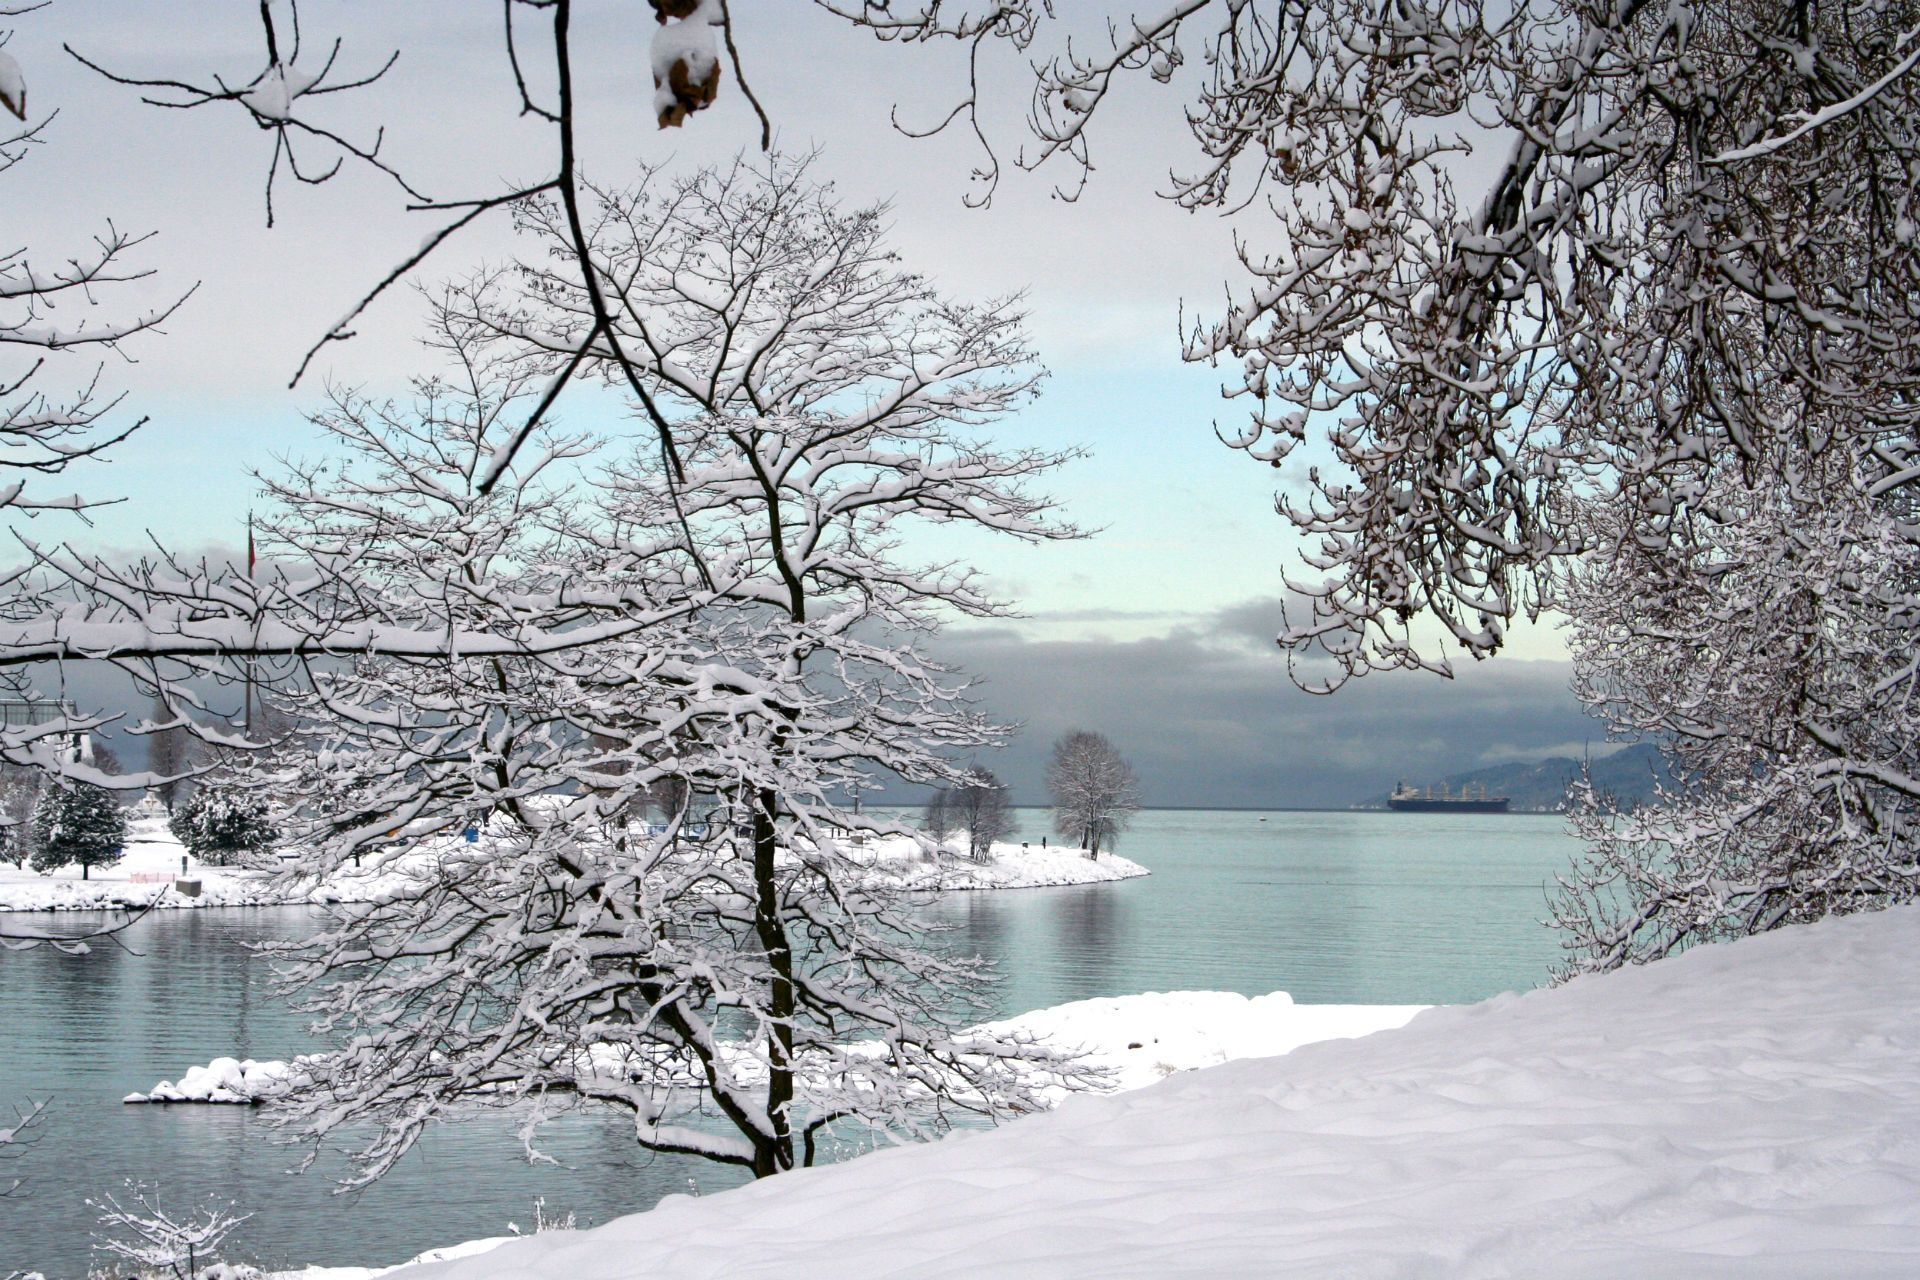 snowy winter scenes - Google Search | Winter Pictures ...